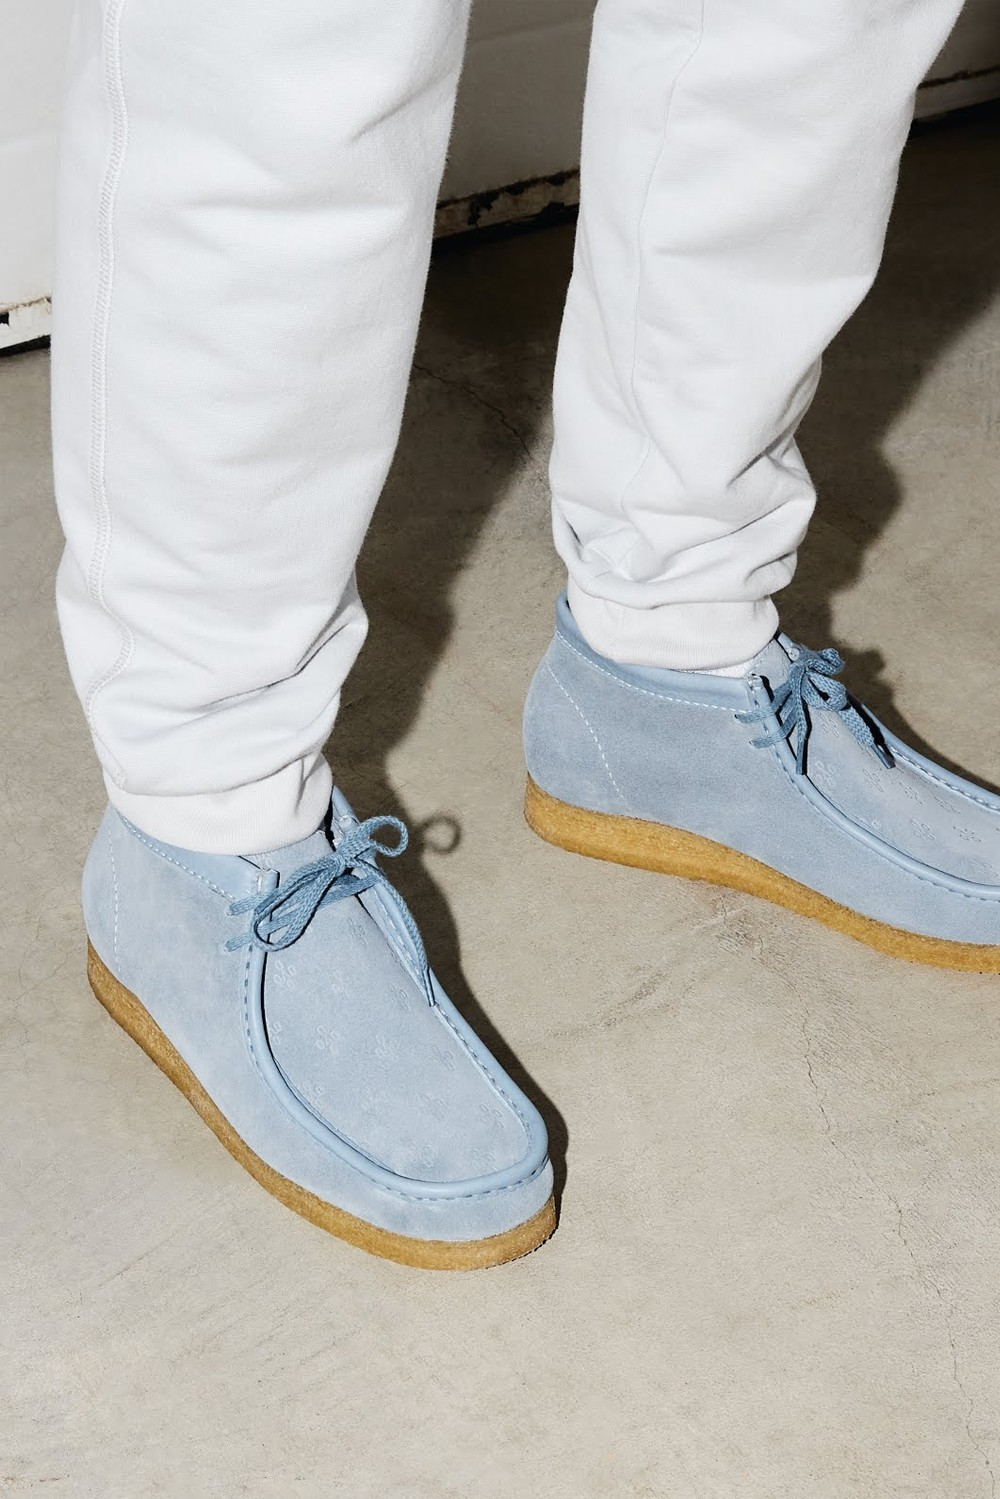 OVO Reveals Clarks Collaboration in New